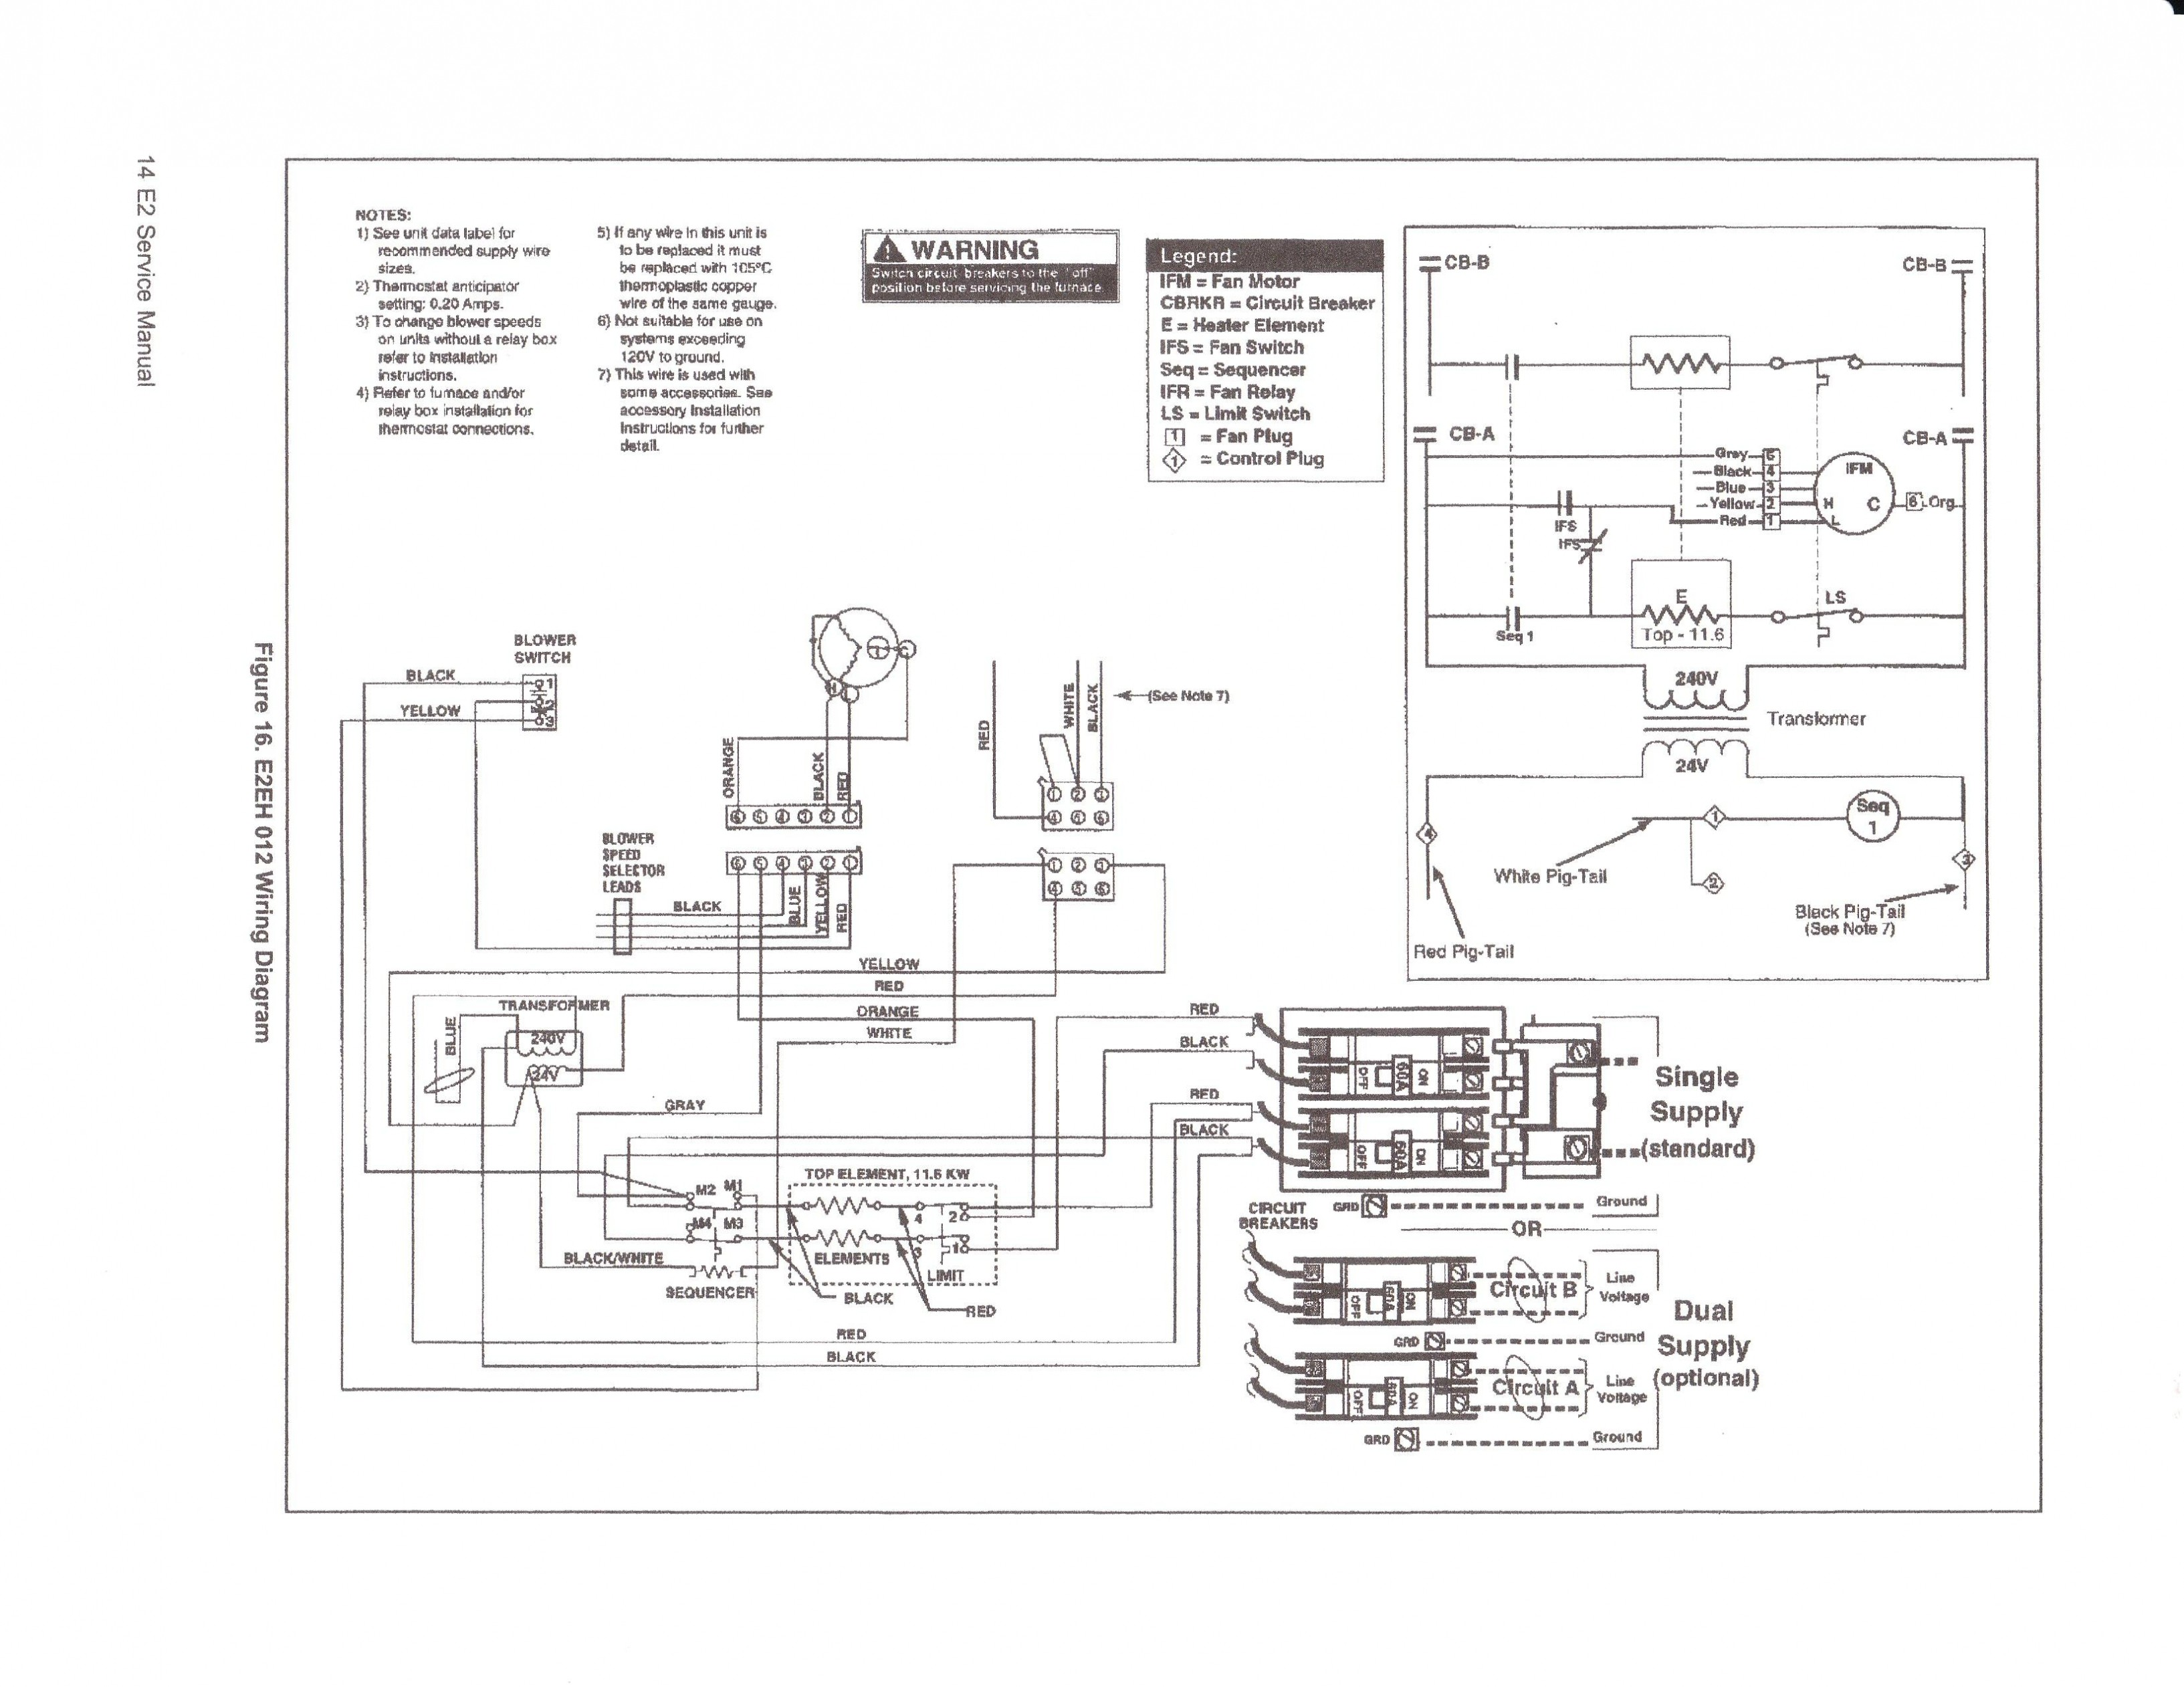 Intertherm Electric Furnace Wiring Diagram – Intertherm Electric Furnace Wiring Diagram Webtor Best Solutions